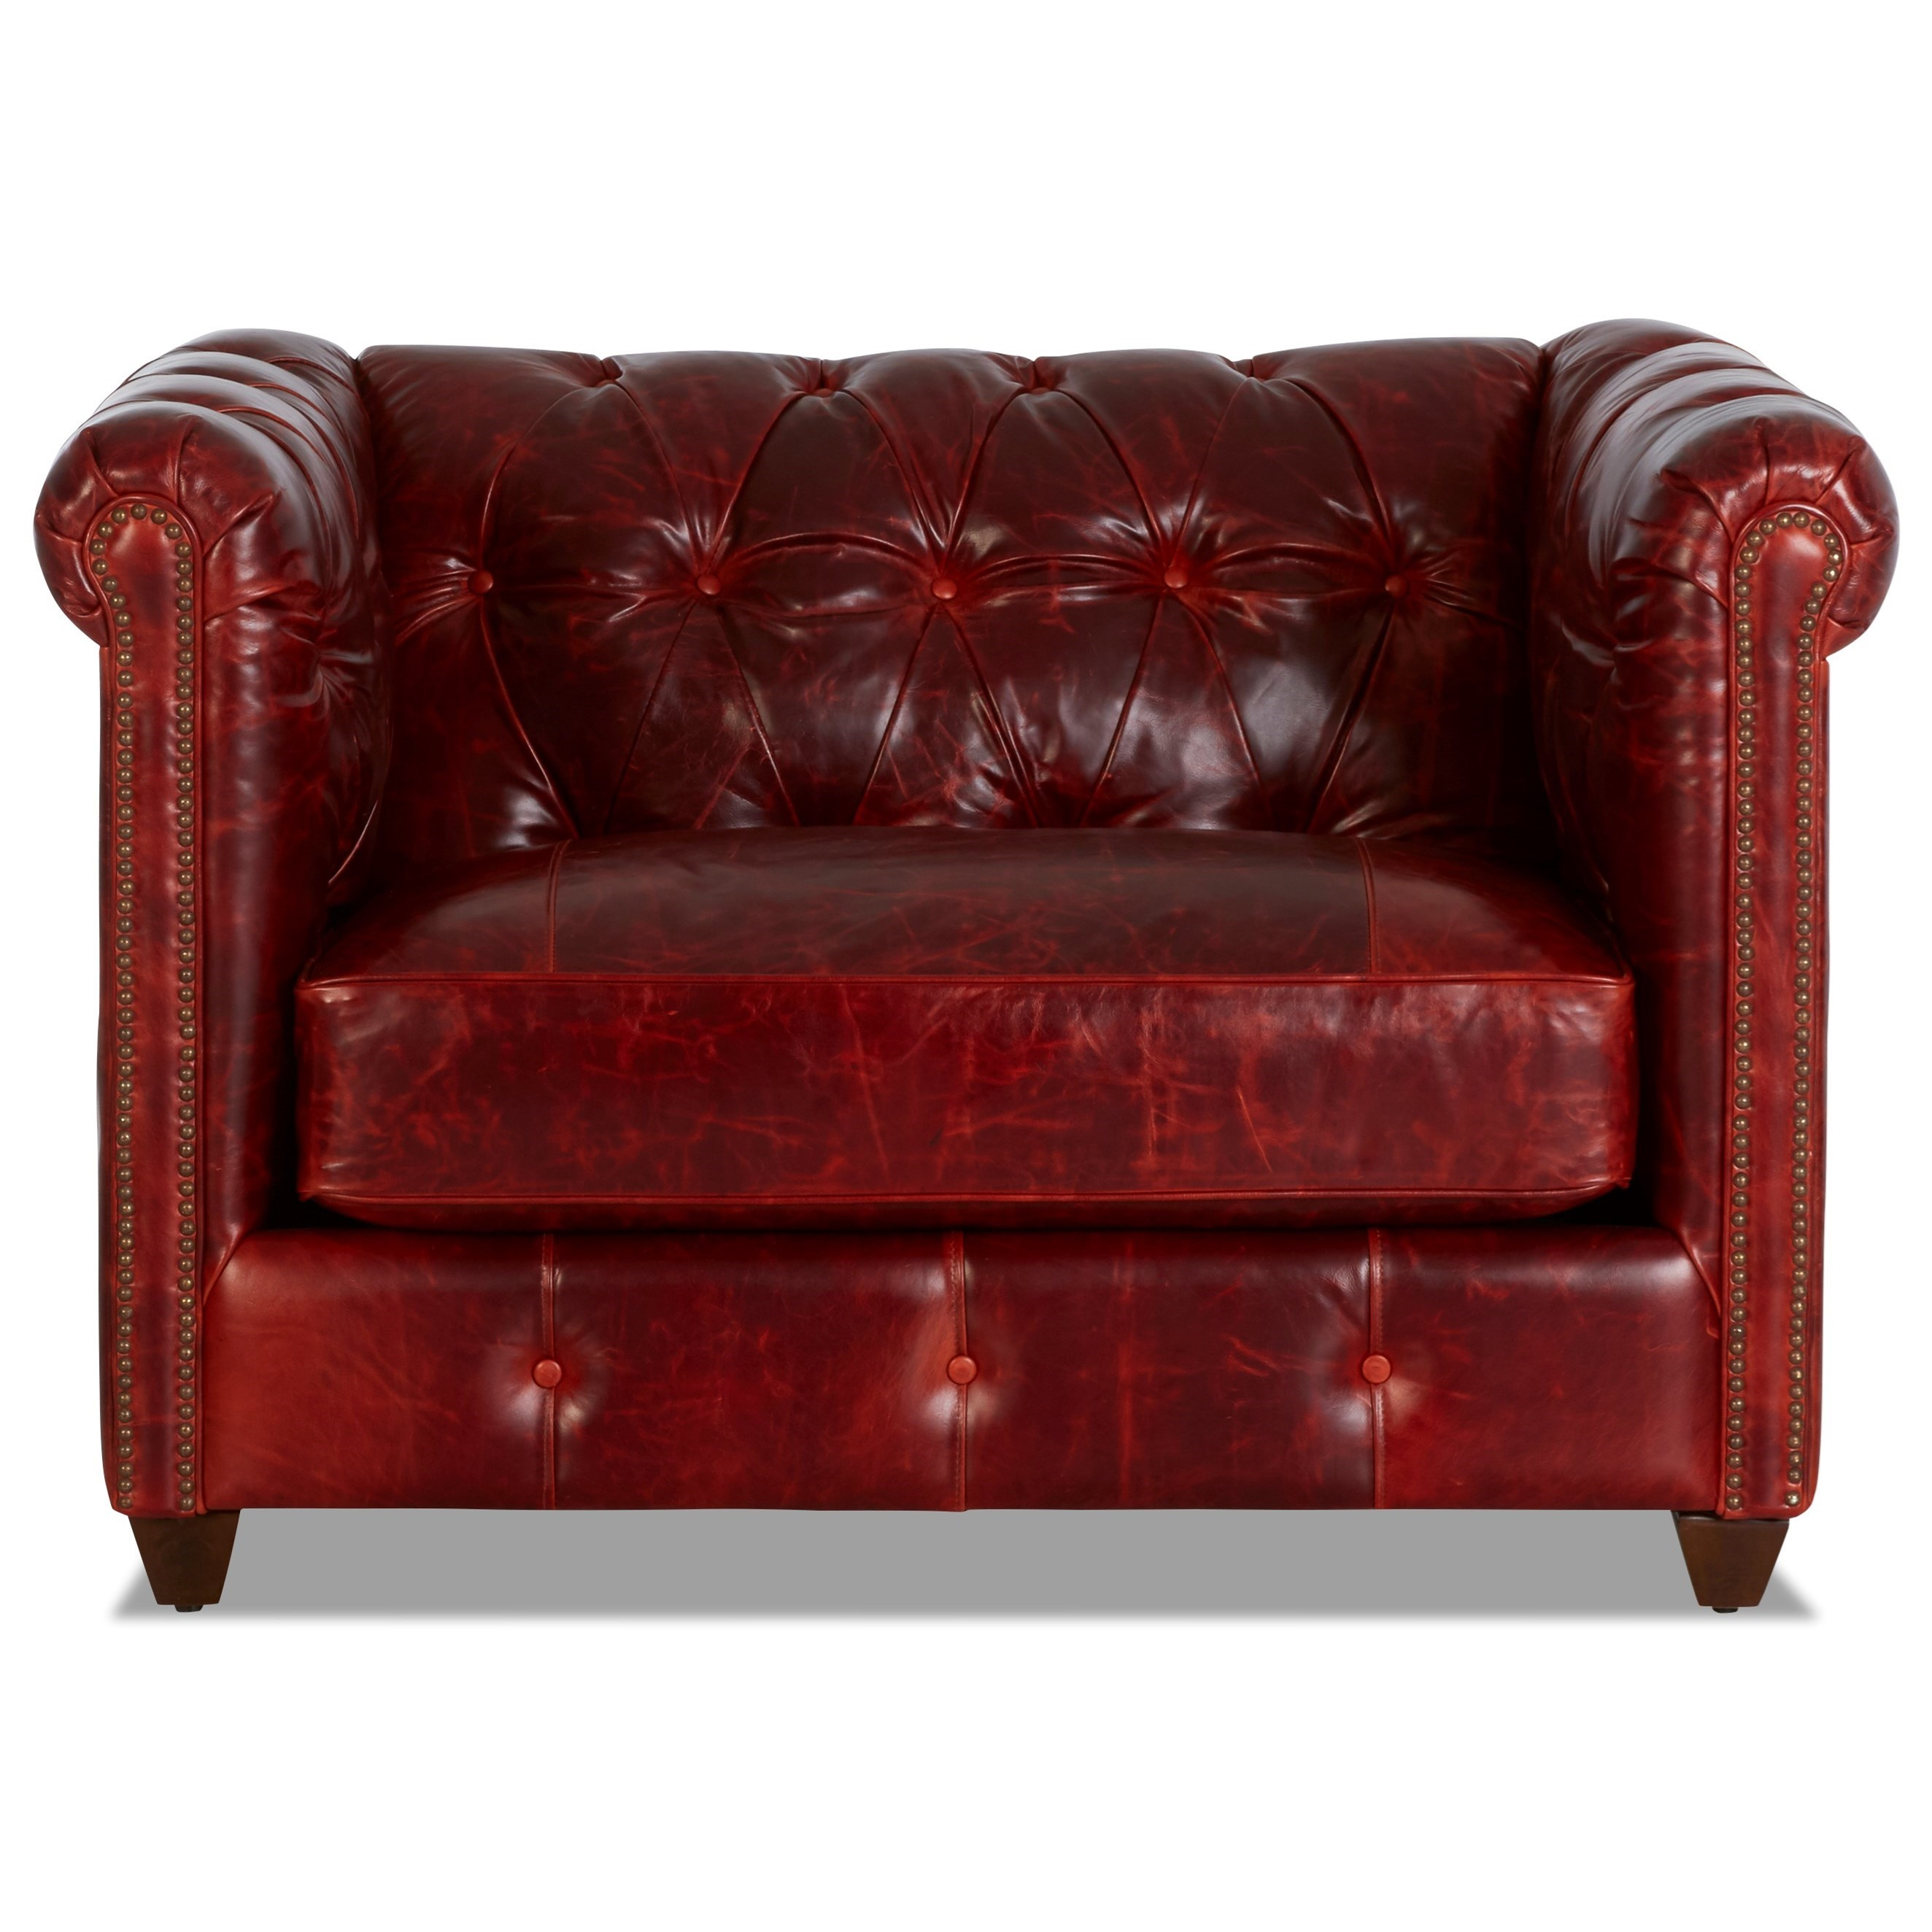 Big Chair with Nailhead Trim